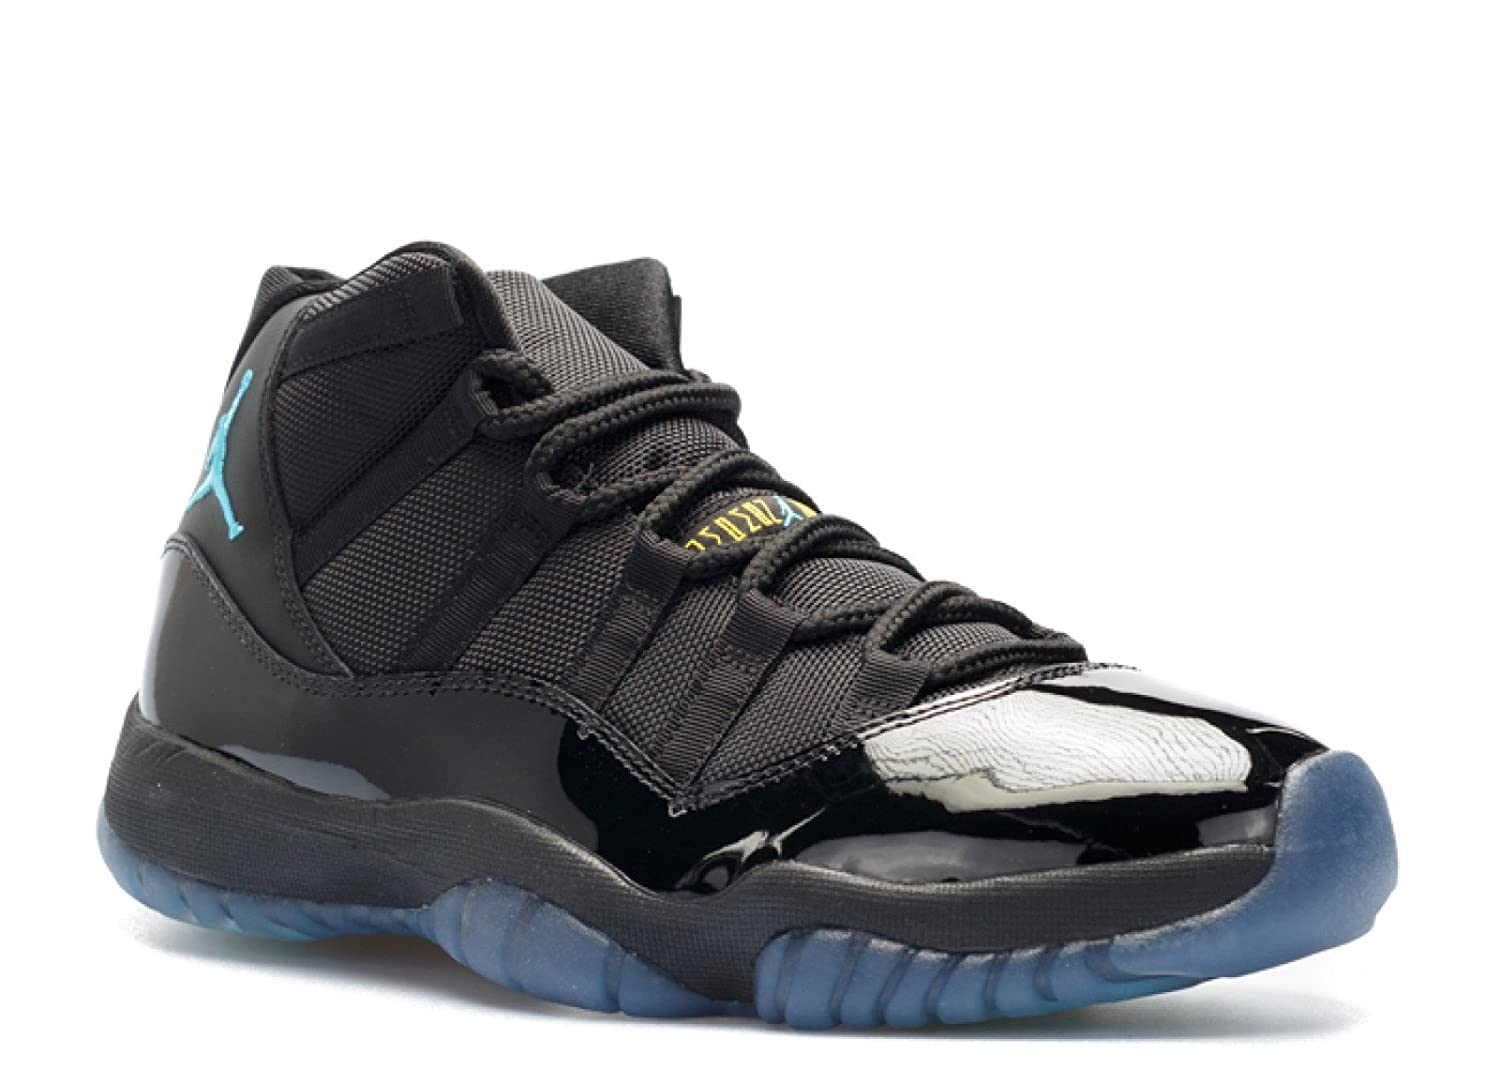 best website 1dd3b ec353 Amazon.com   Nike AIR Jordan 11 Retro  Gamma Blue  - 378037-006 - Size 13.5    Basketball